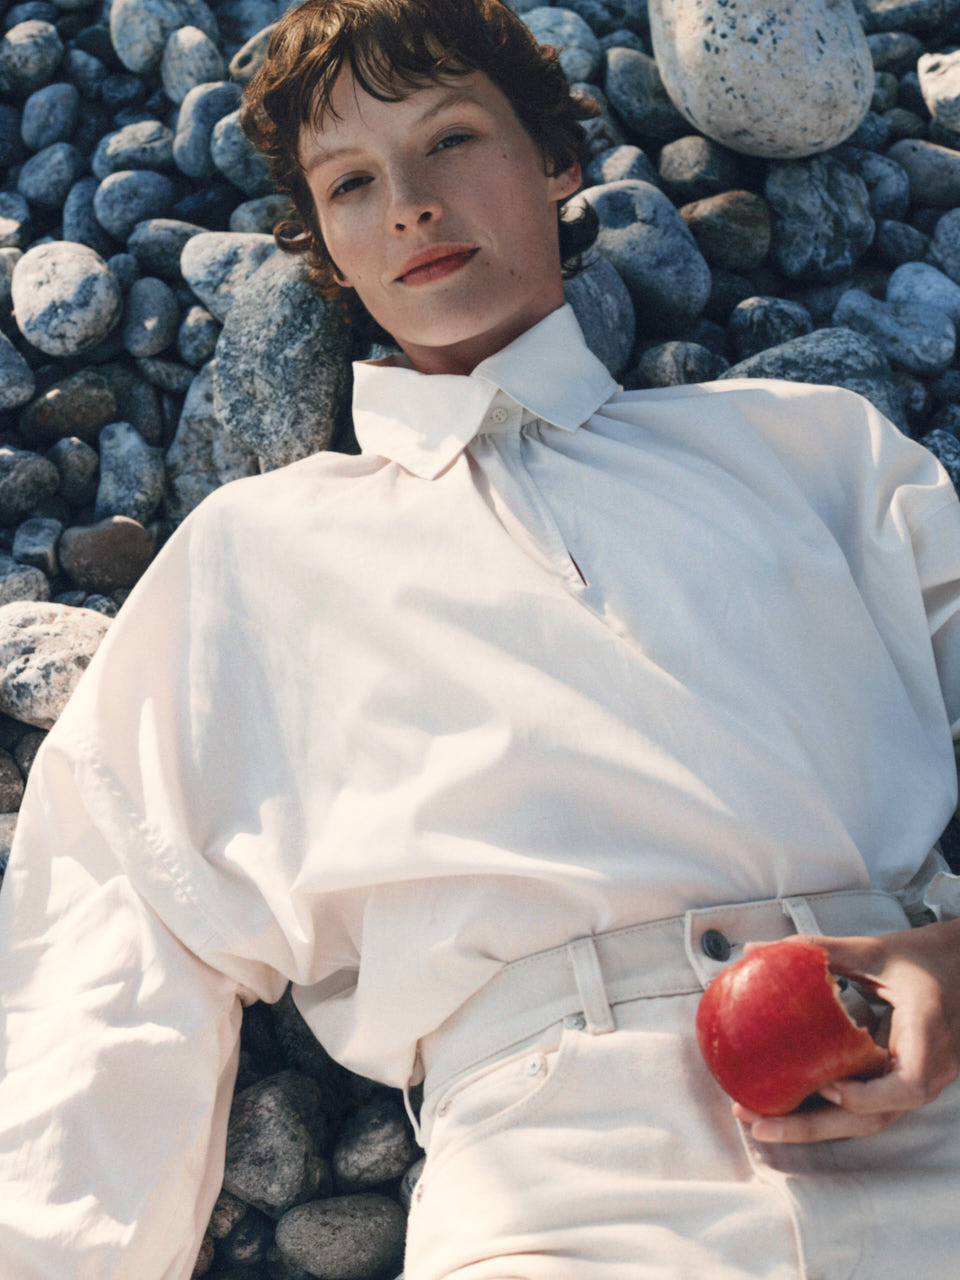 Female model in white shirt and white trousers laying down on a nordic pebble beach holding an apple